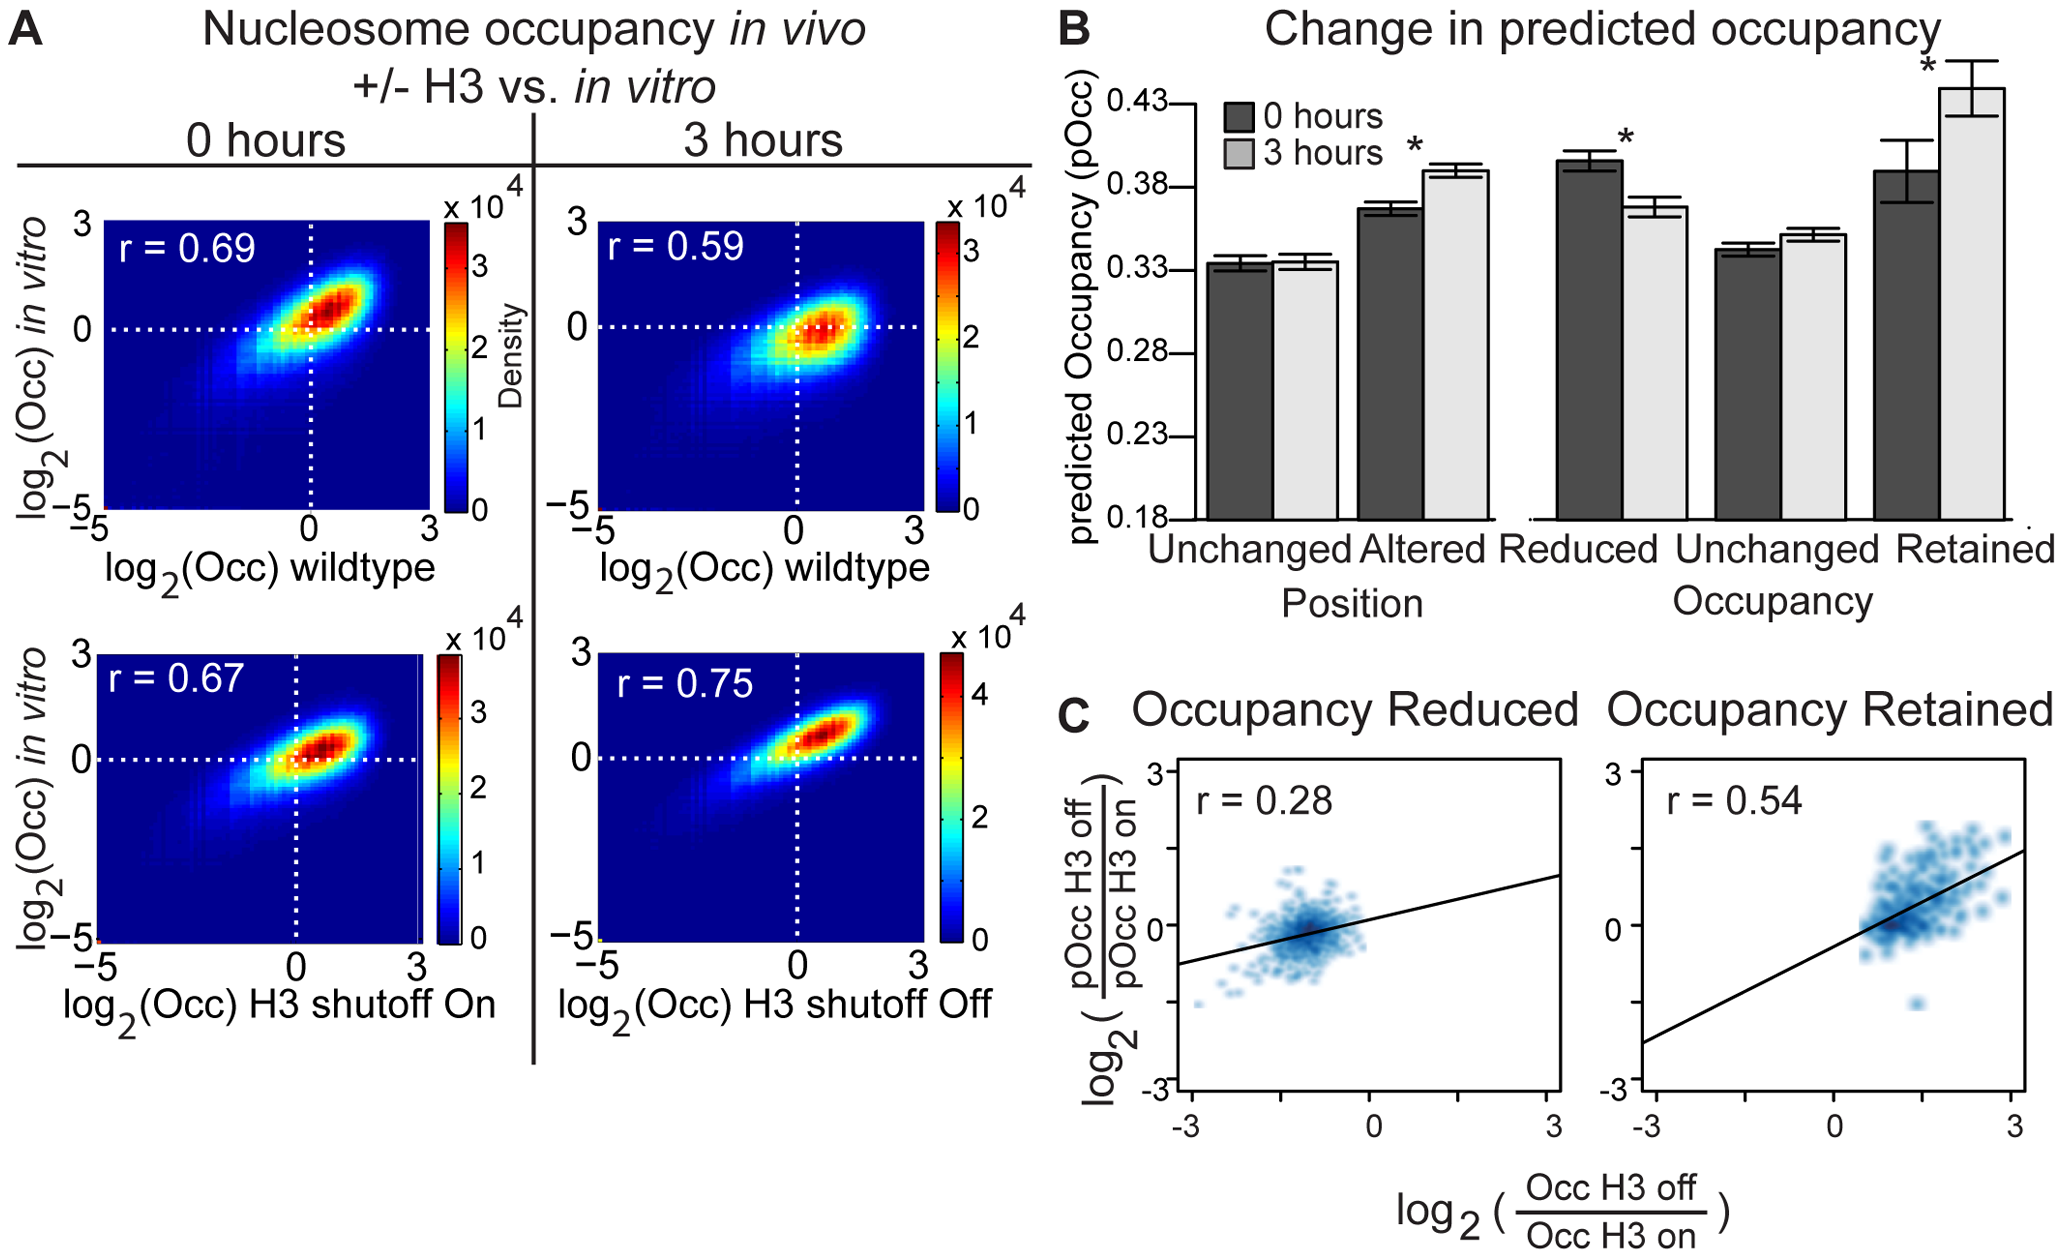 DNA sequence contributes to nucleosome occupancy changes following H3 depletion.